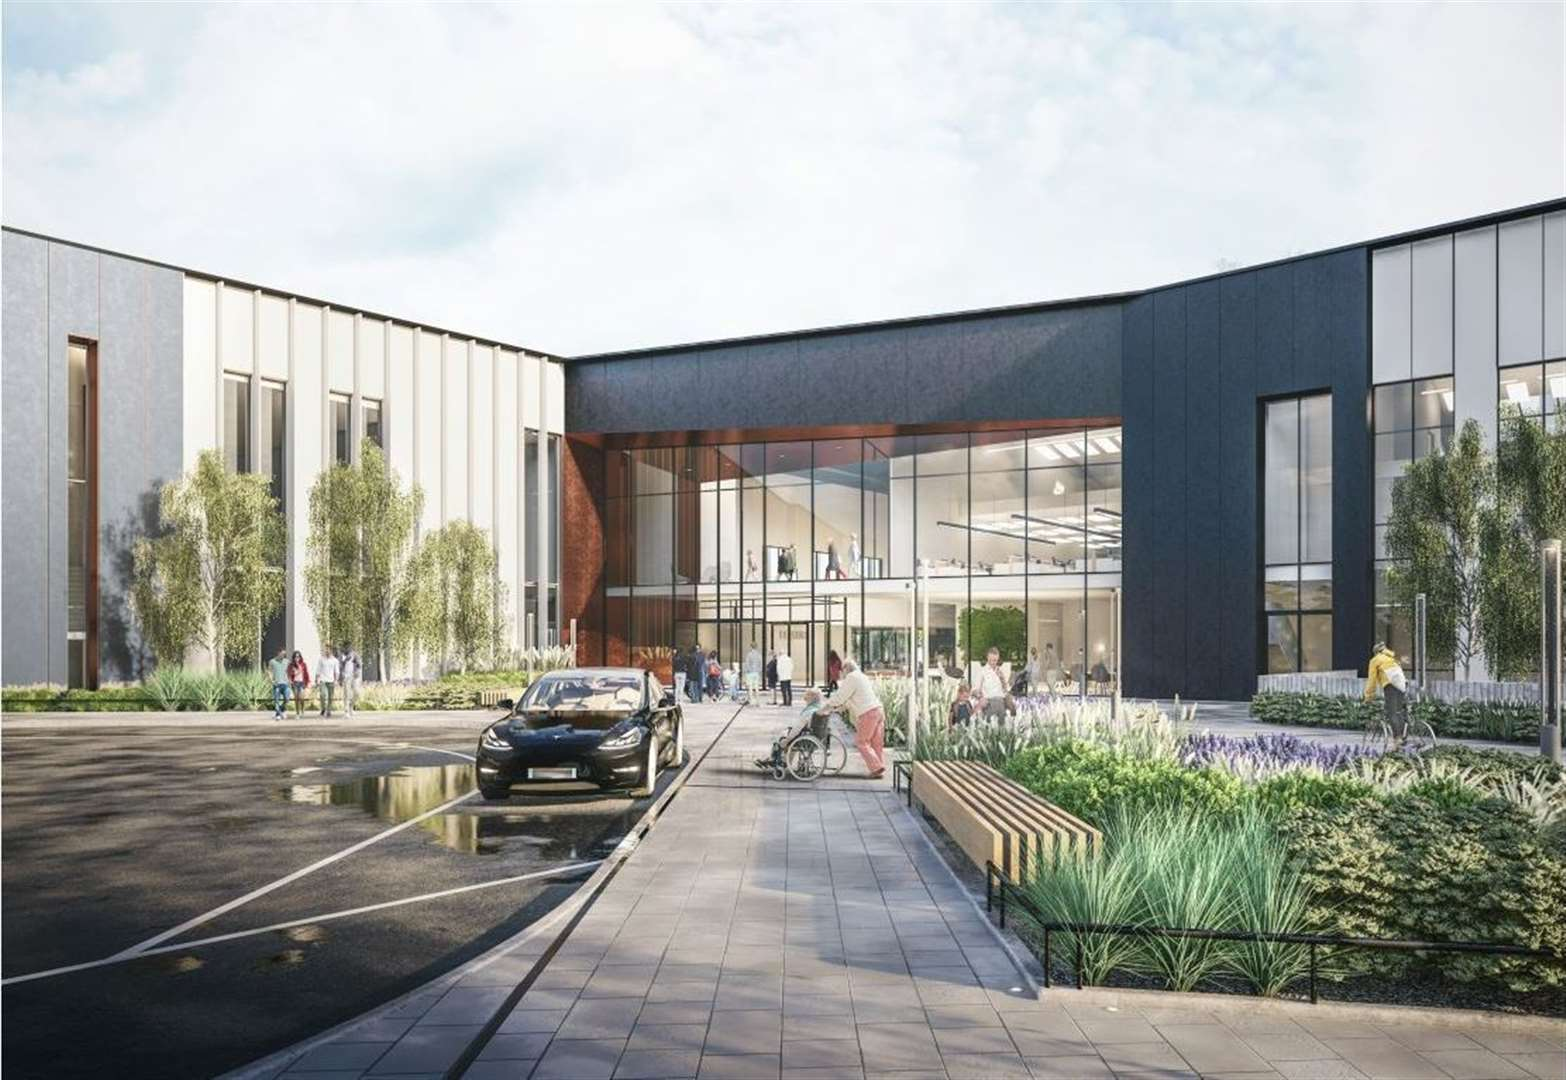 See latest designs for Bury St Edmunds public services hub as plans submitted